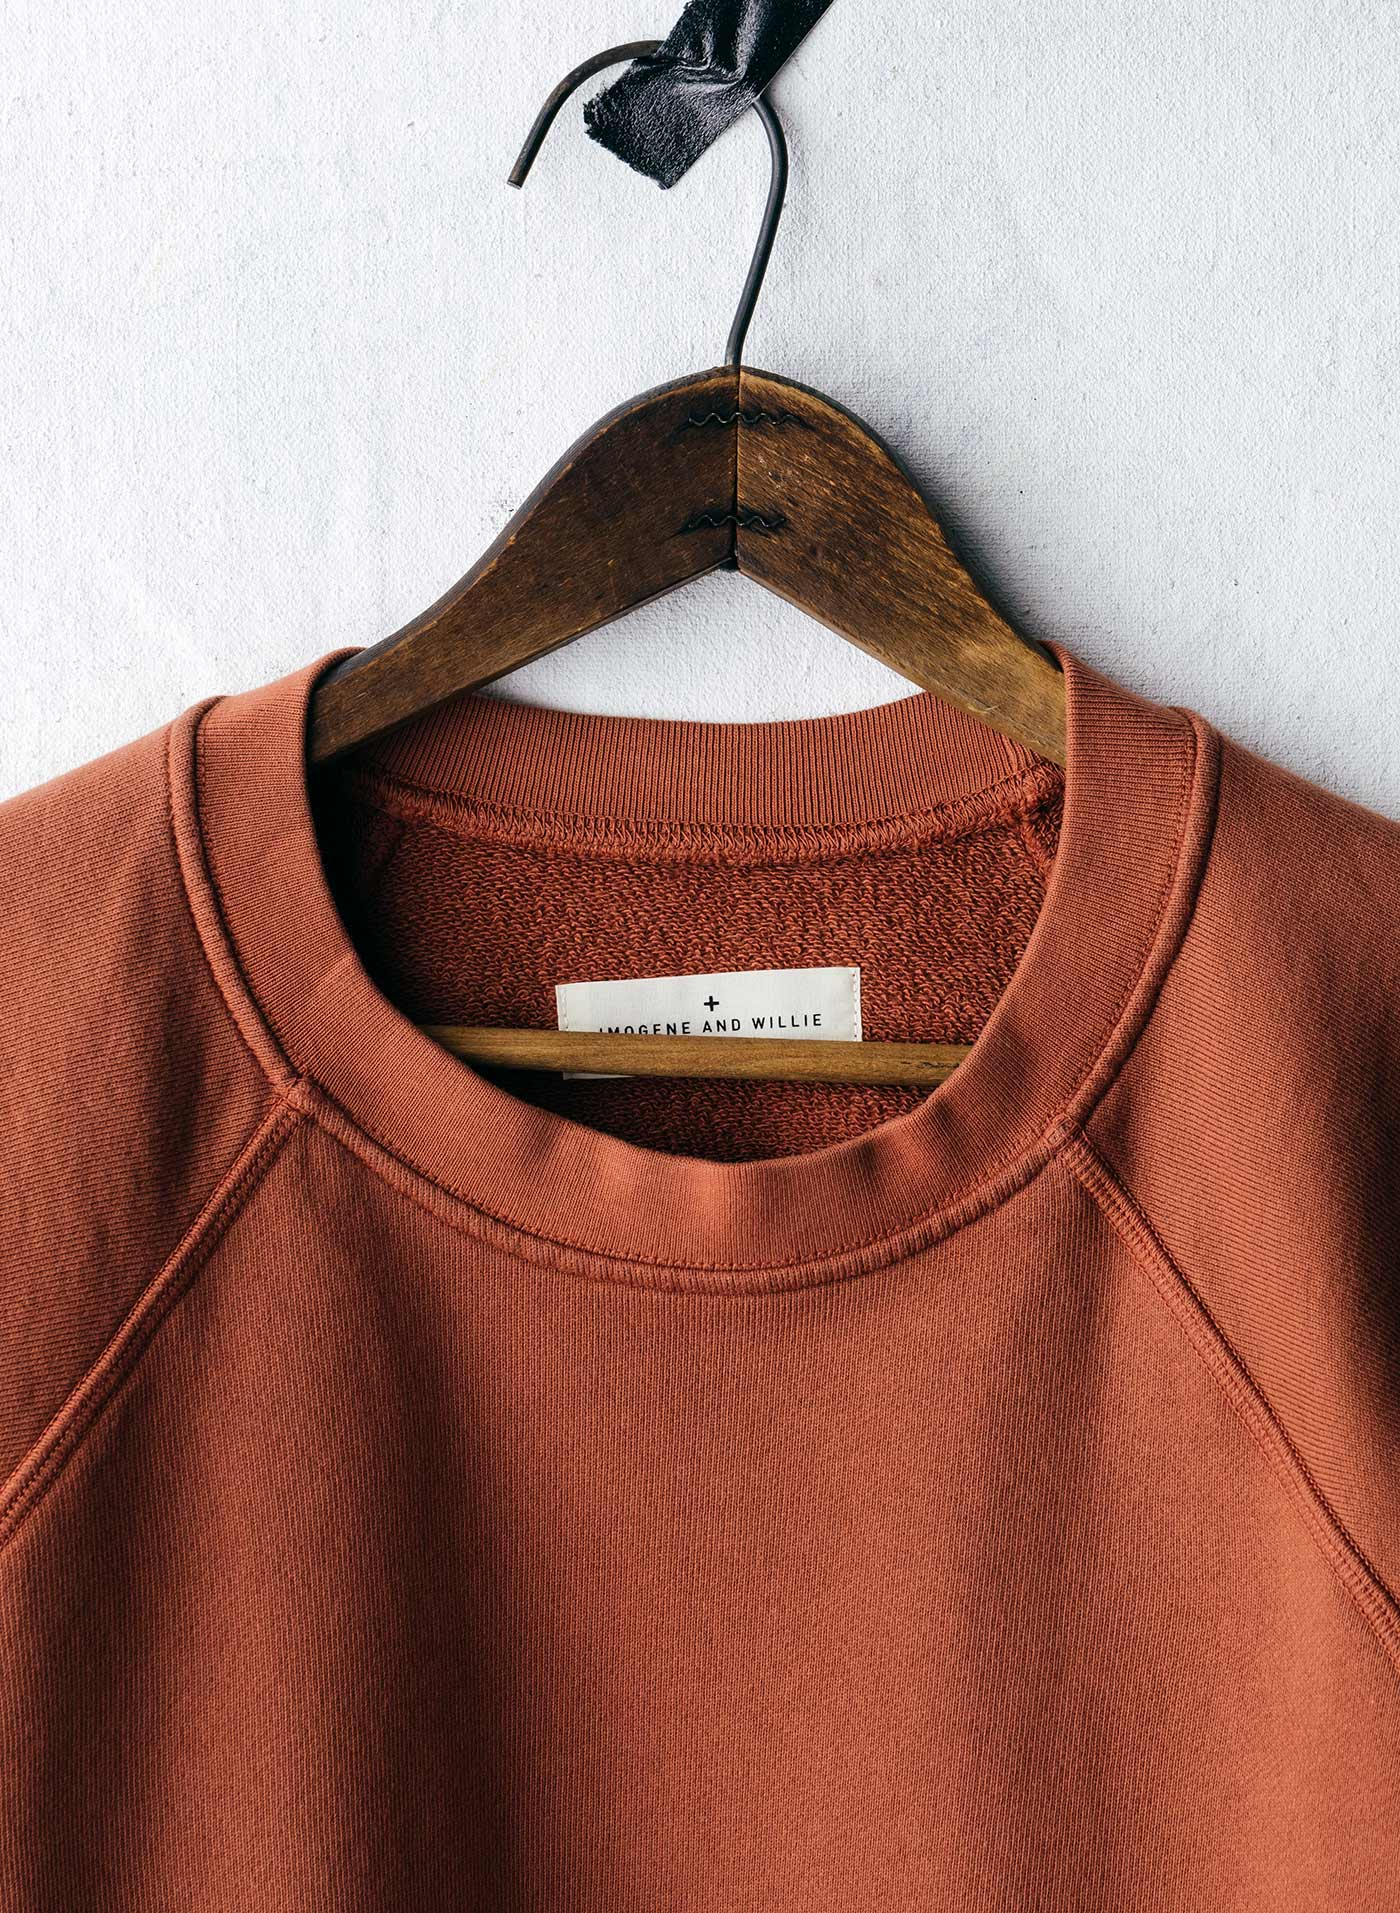 imogene + willie - layla s/s sweatshirt in faded fire